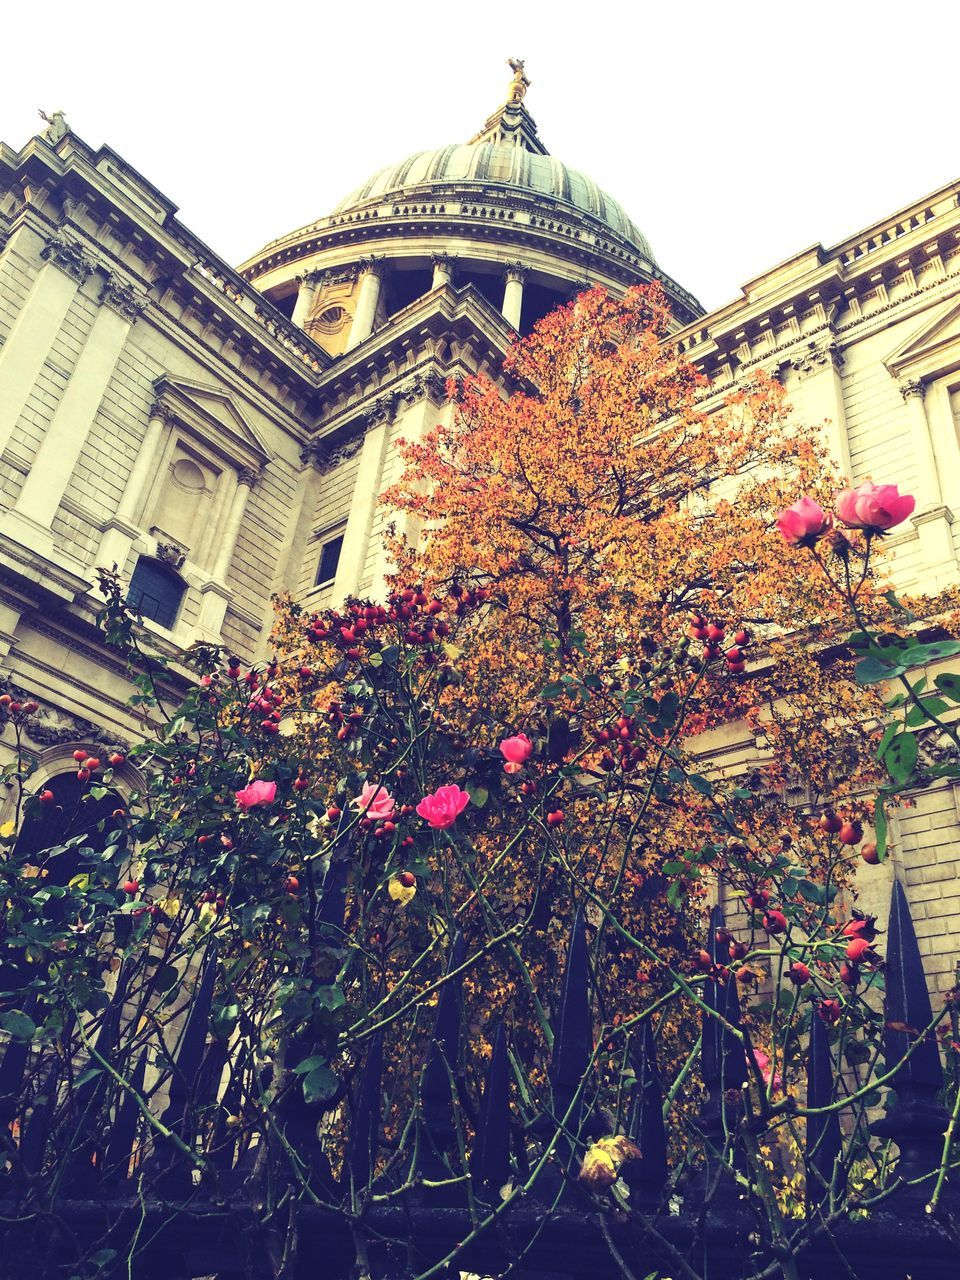 architecture, building exterior, built structure, flower, low angle view, day, religion, outdoors, growth, spirituality, no people, place of worship, plant, dome, clear sky, fragility, tree, nature, city, freshness